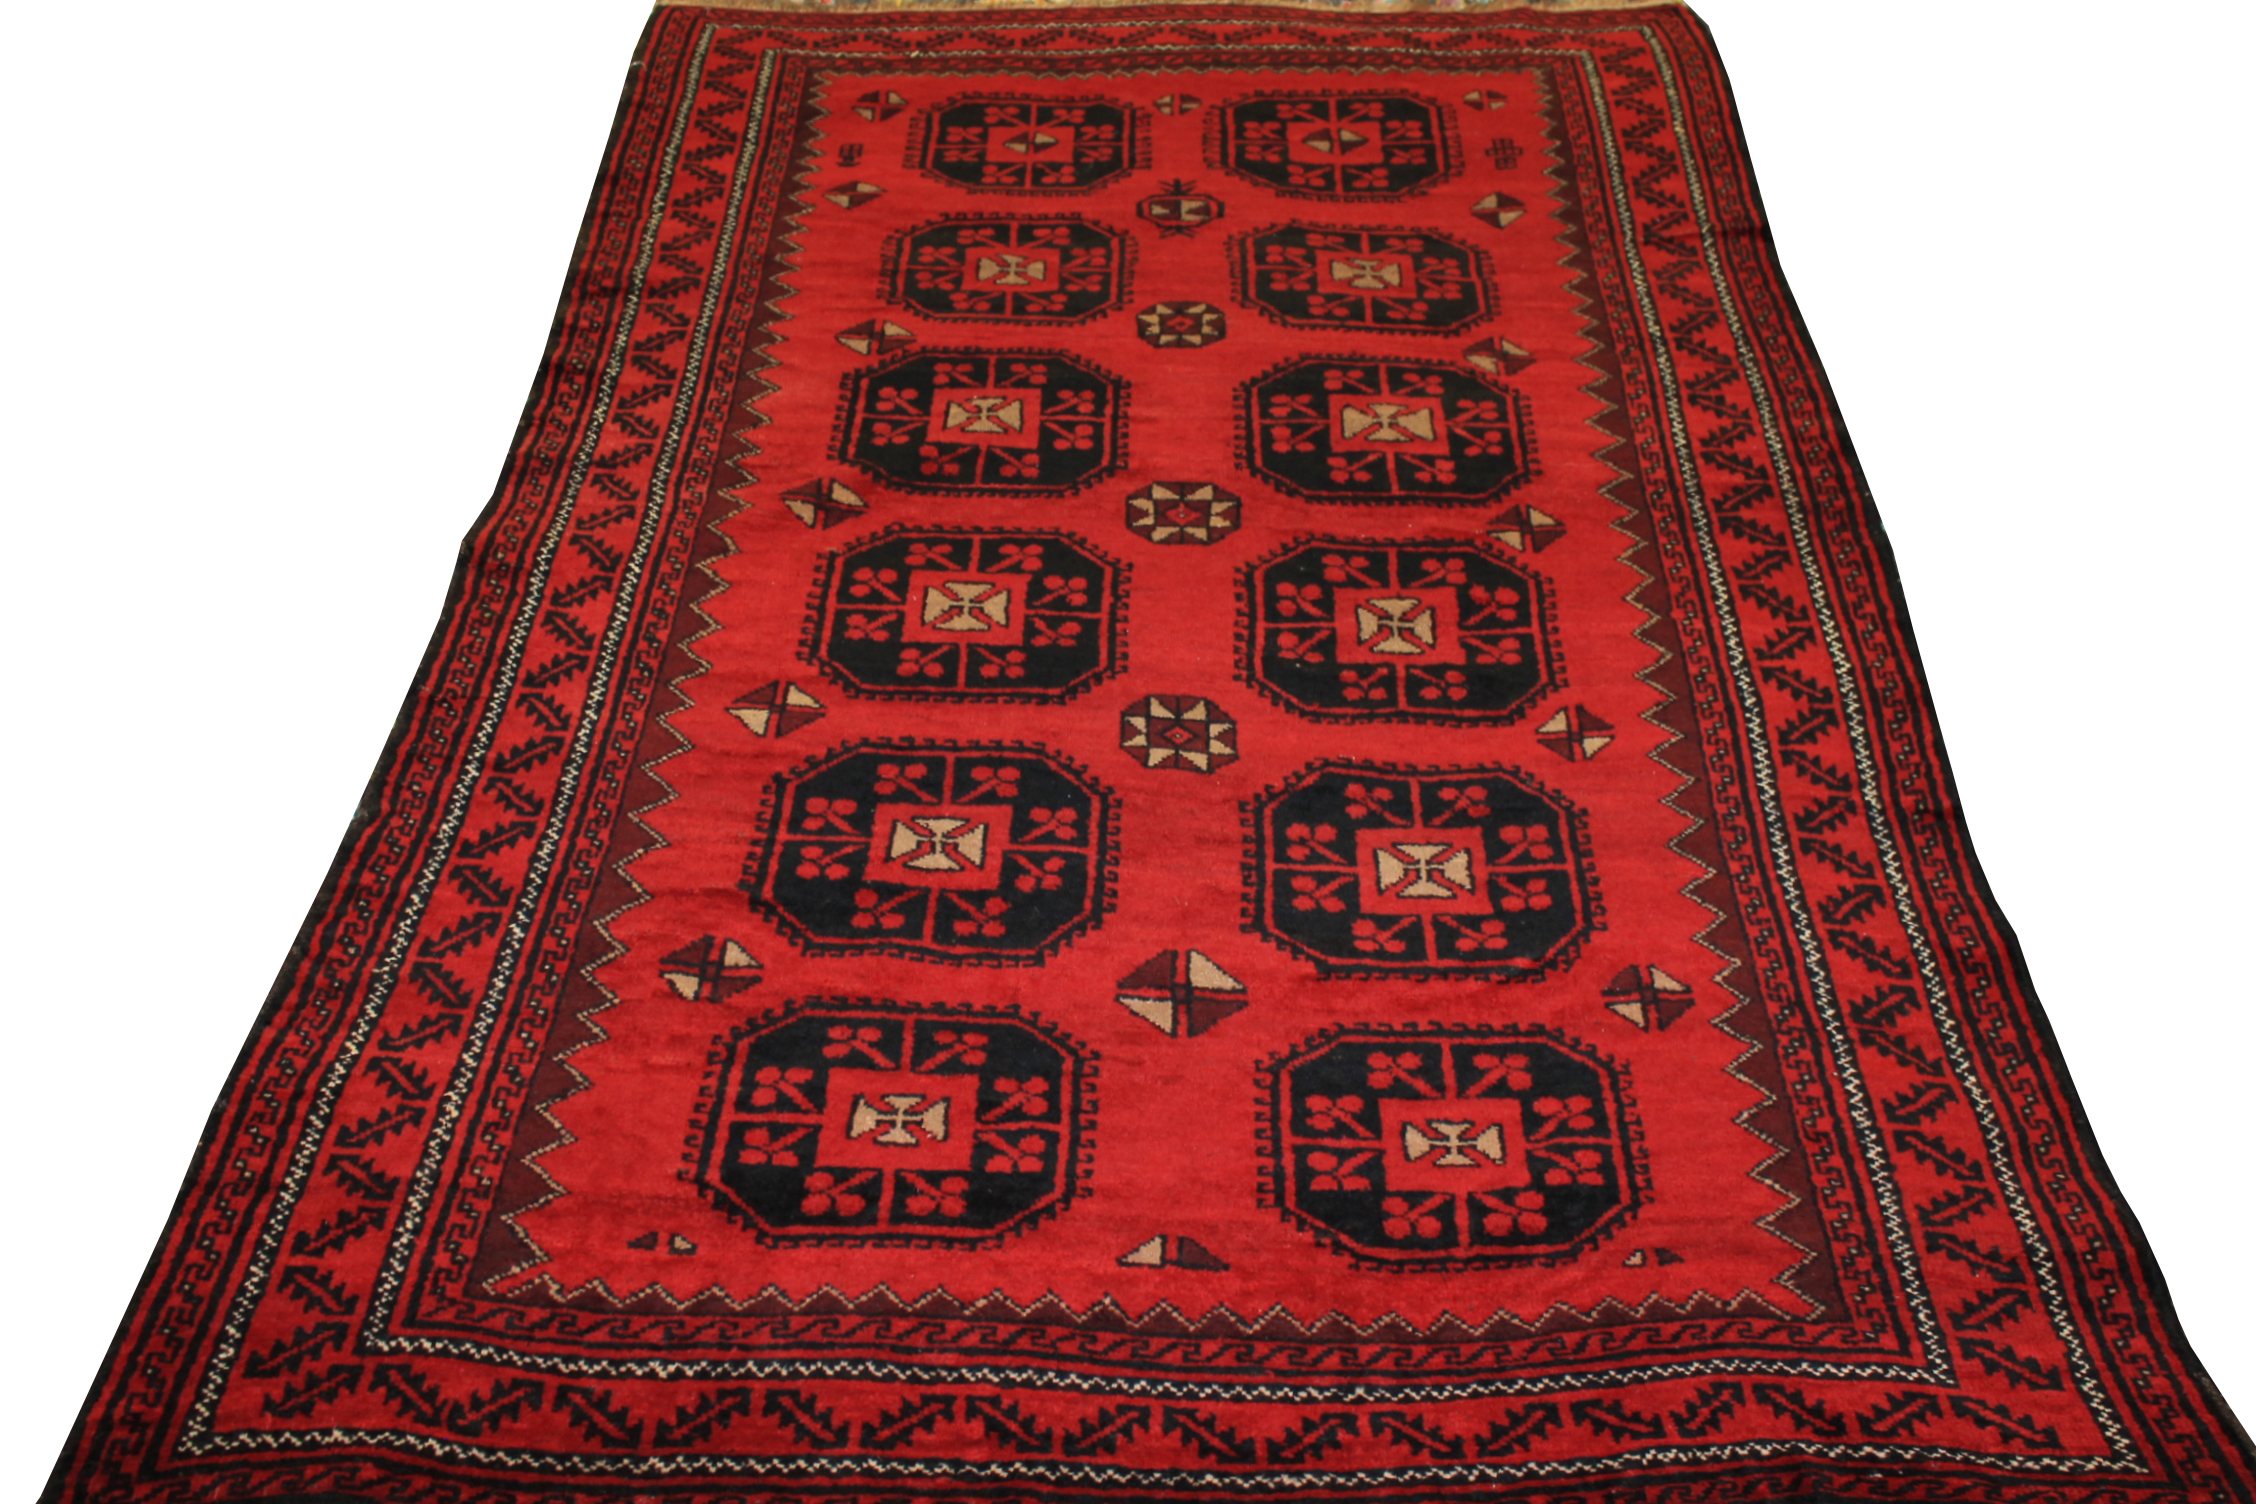 5x7/8 Bokhara Hand Knotted Wool Area Rug - MR19452